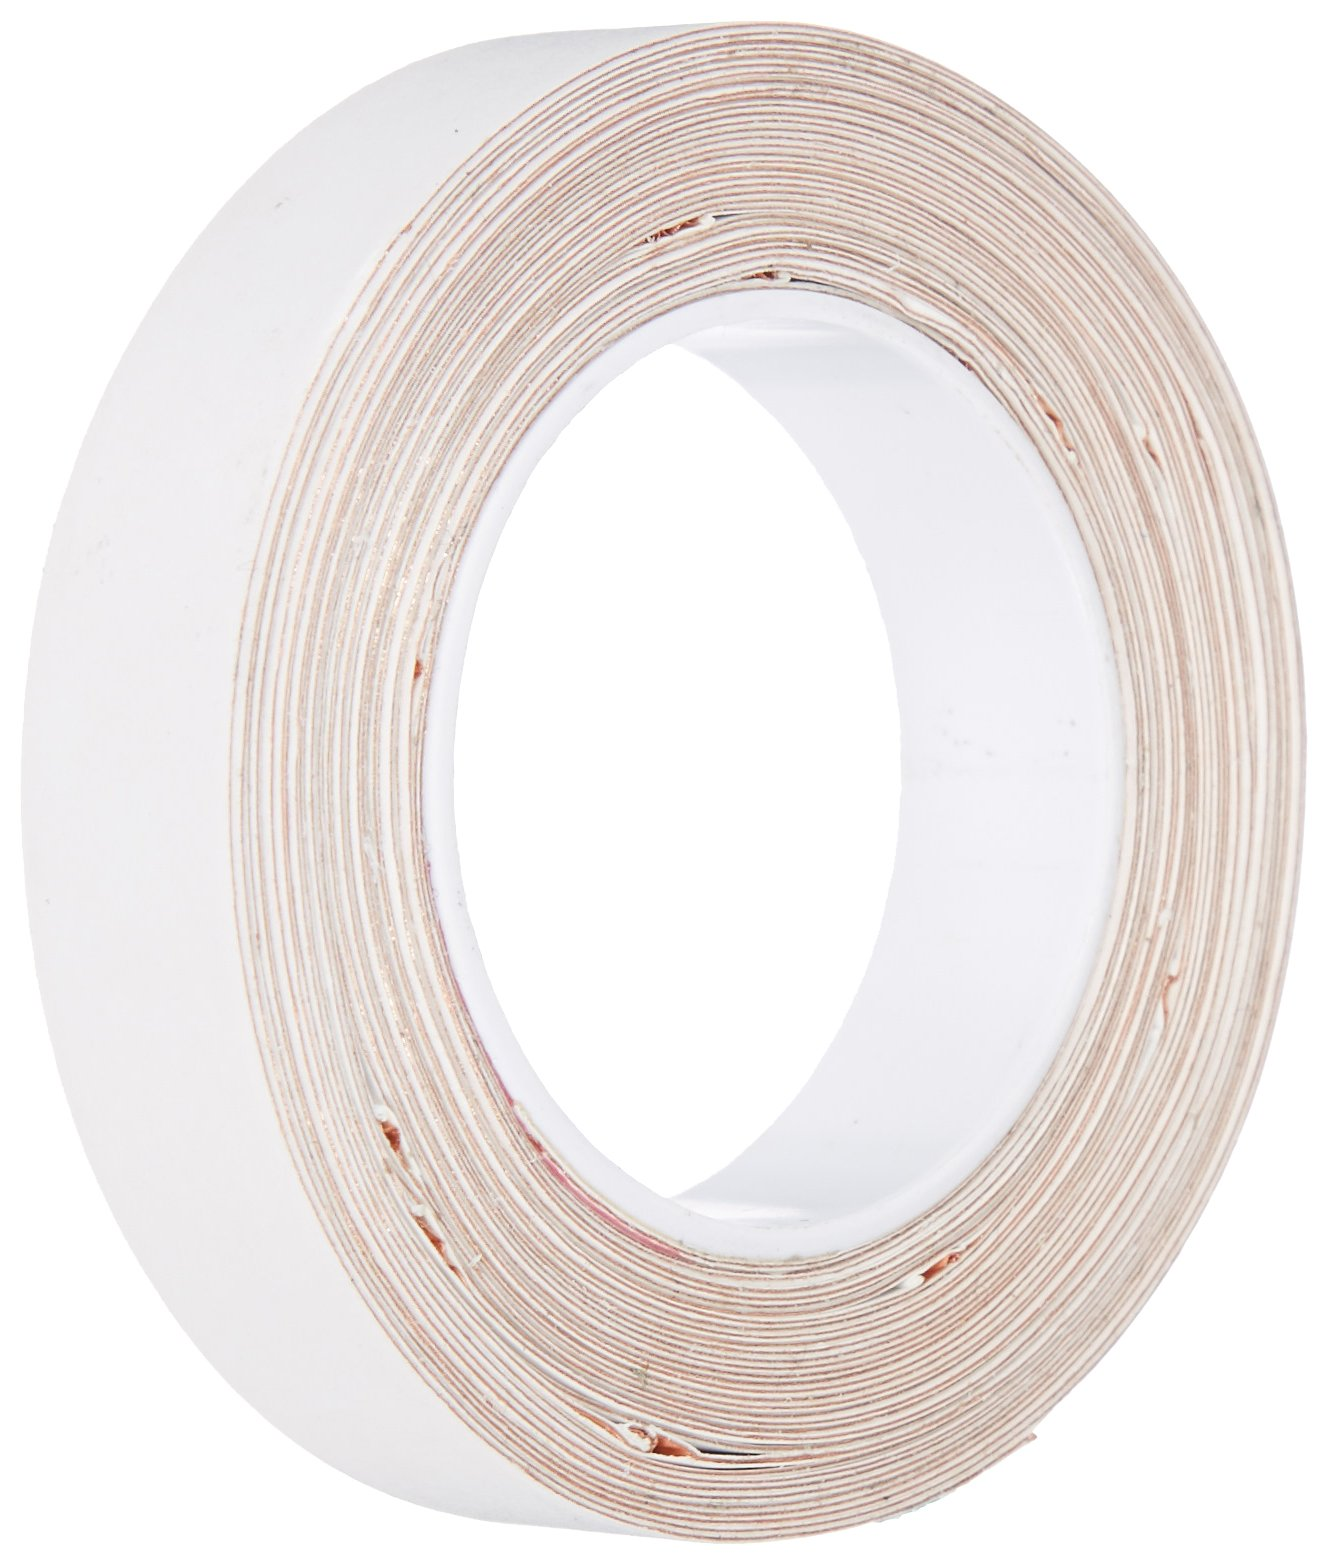 Cinta de Cobre 12mm x 5.5mt Doble Adhesivo 3M